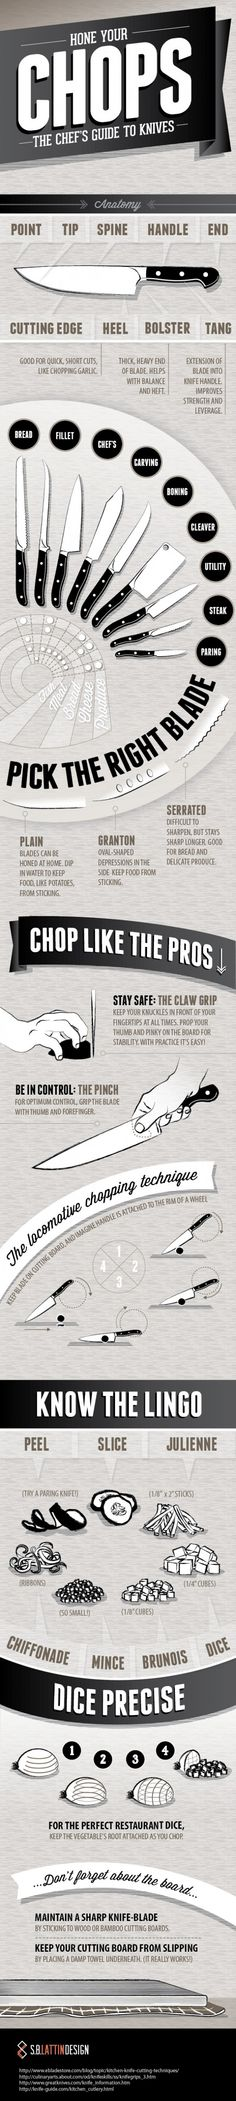 Hone Your Chops: The Chef's Guide To Knives / This handy infographic covers everything from how to properly handle the knife when cutting, to the different terms used to describe the different parts of the knife itself, to how to chop, slice, or dice like a pro.